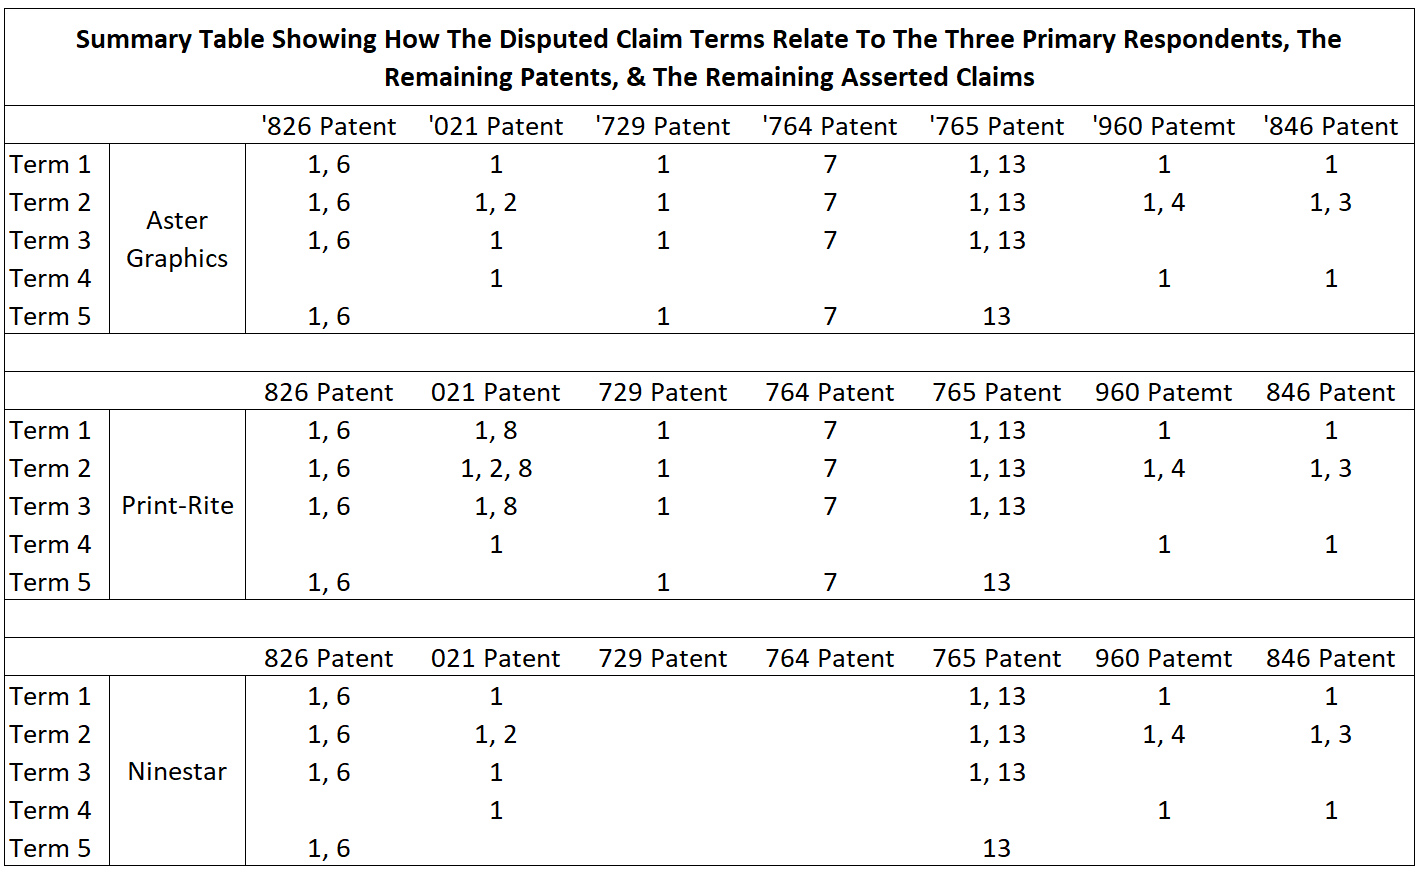 ITC 1106 Summary Table Disputed Claim Terms Vs. Respondents